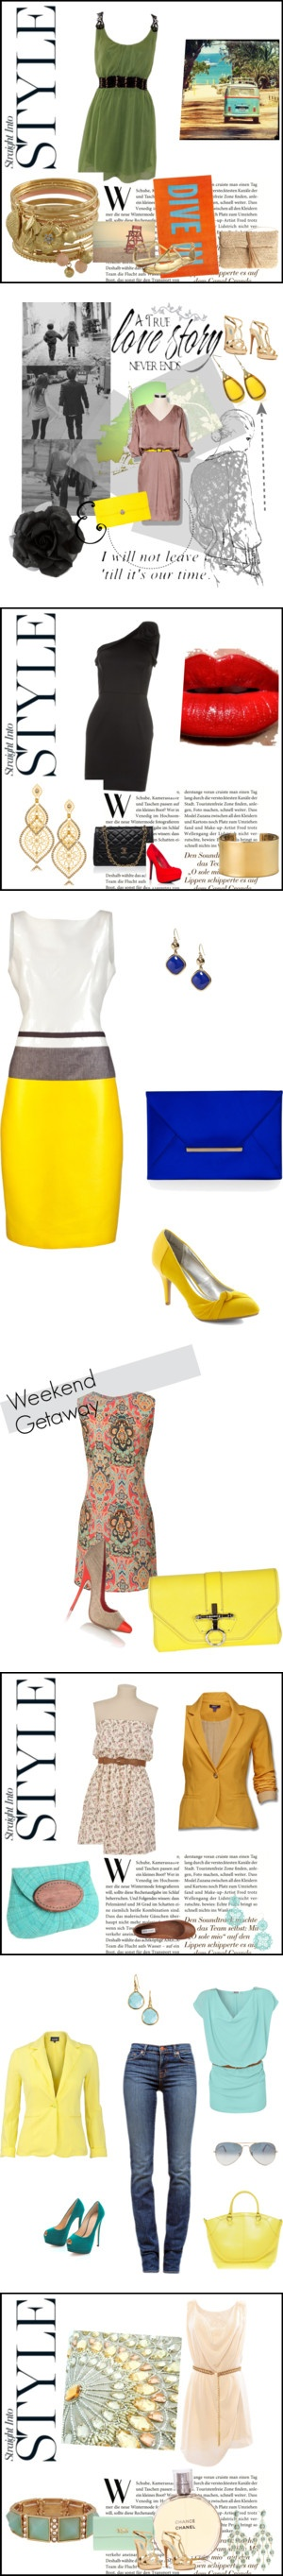 """The sunshine collection"" by gilleastwood on Polyvore"